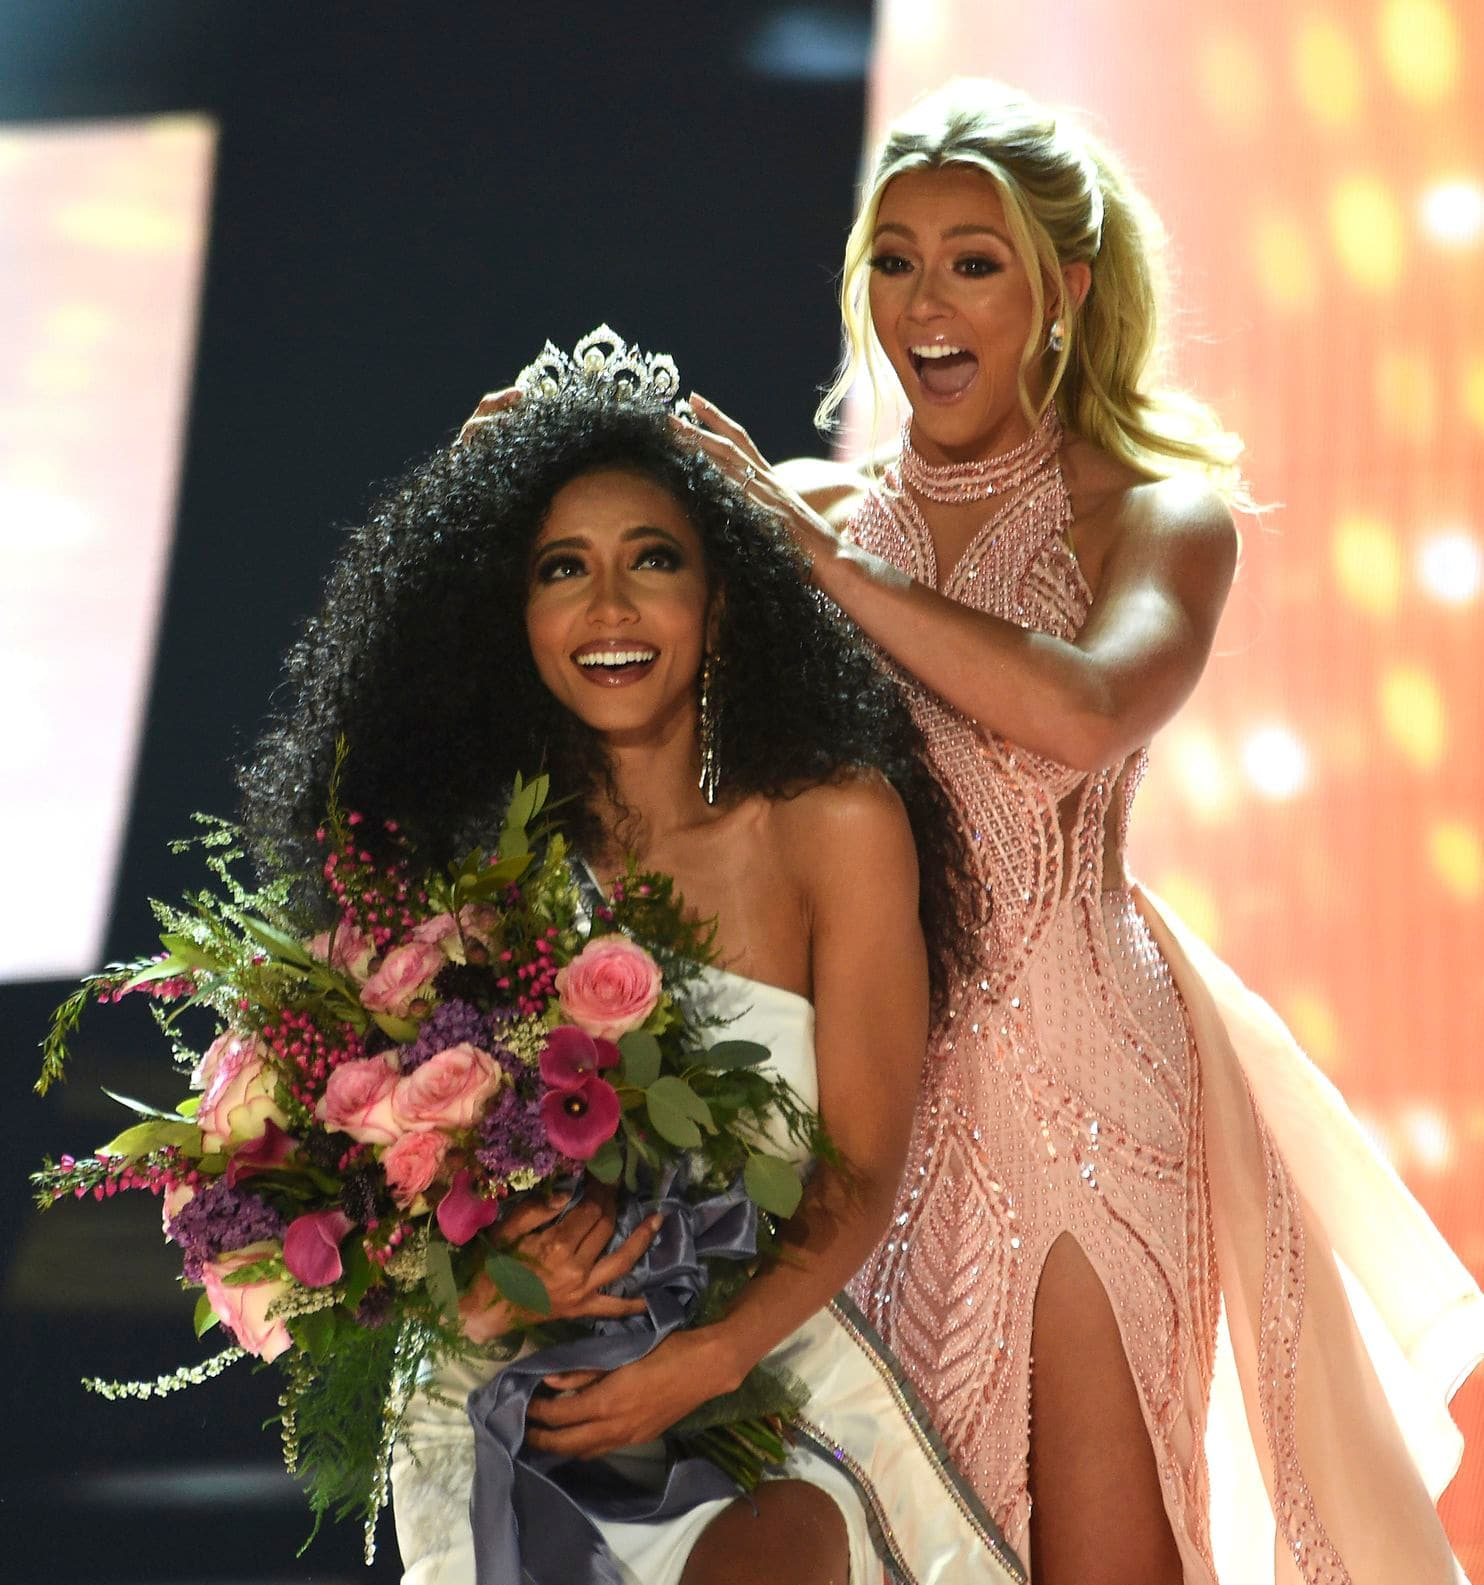 Miss USA 2019 questions and answers,Full transcript